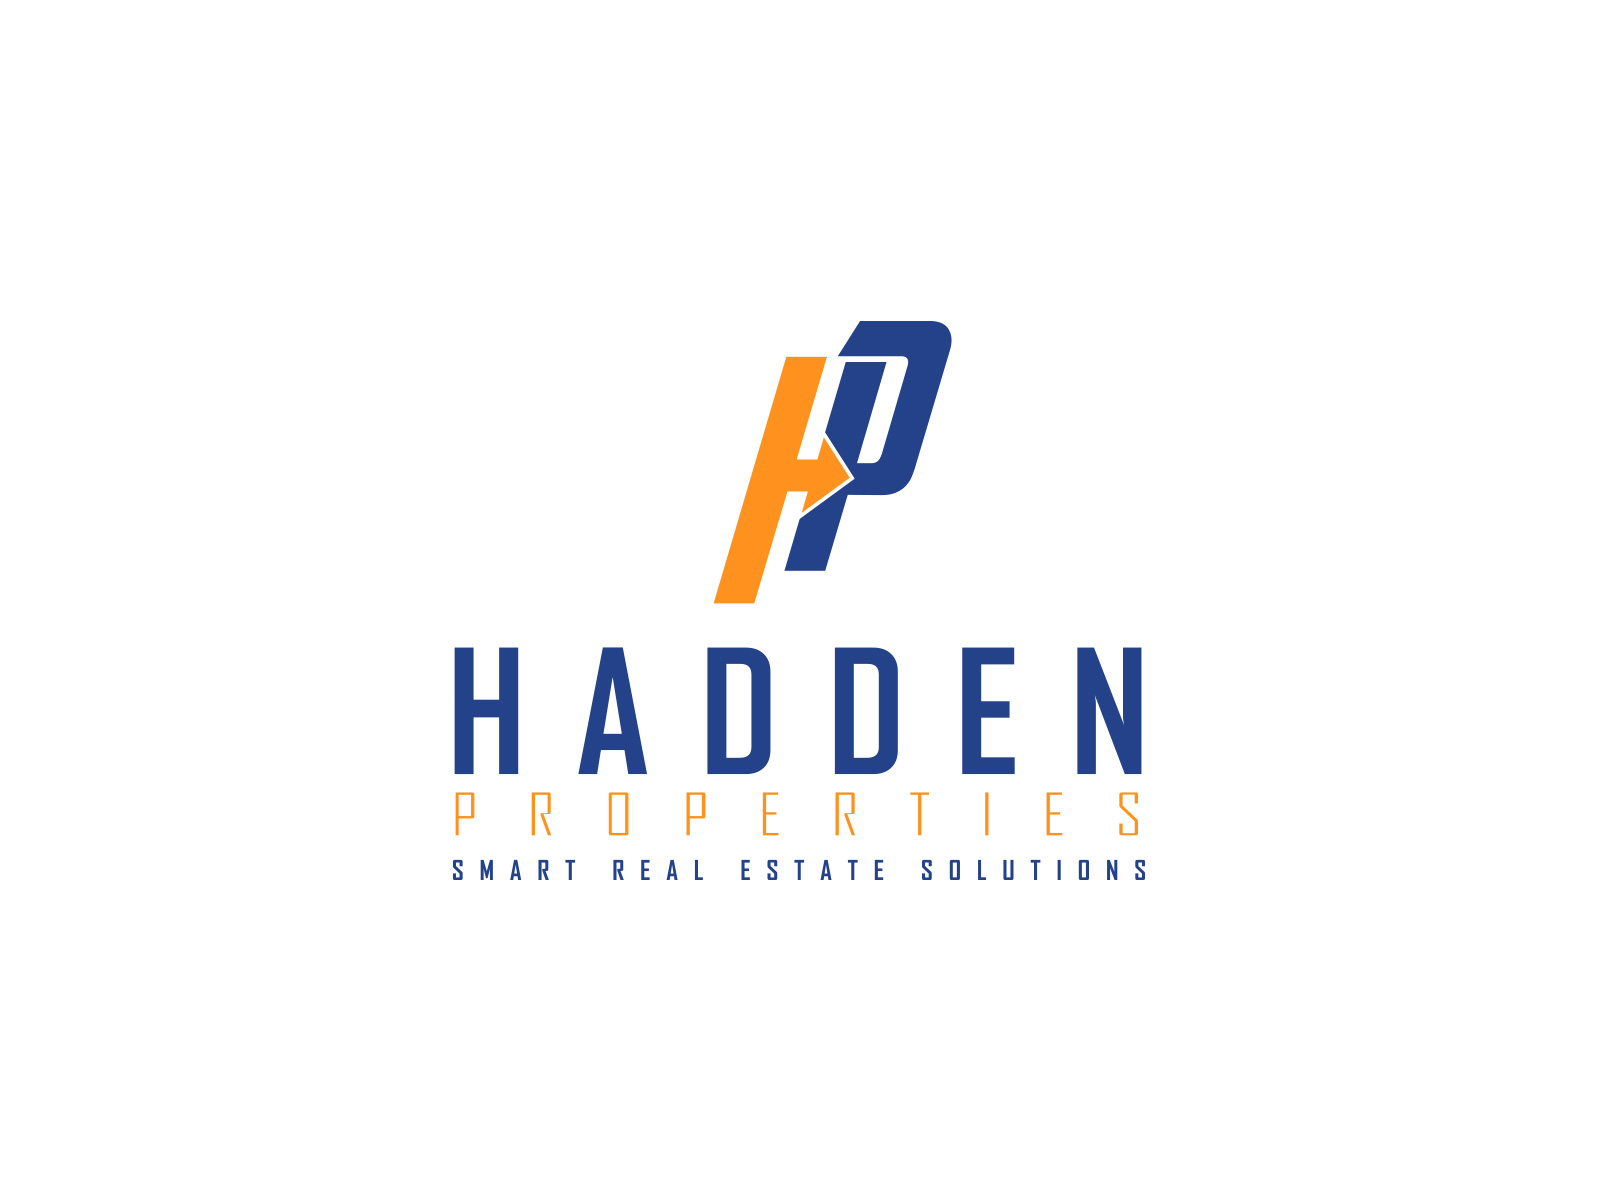 Logo Design by olii - Entry No. 159 in the Logo Design Contest Artistic Logo Design for Hadden Properties.